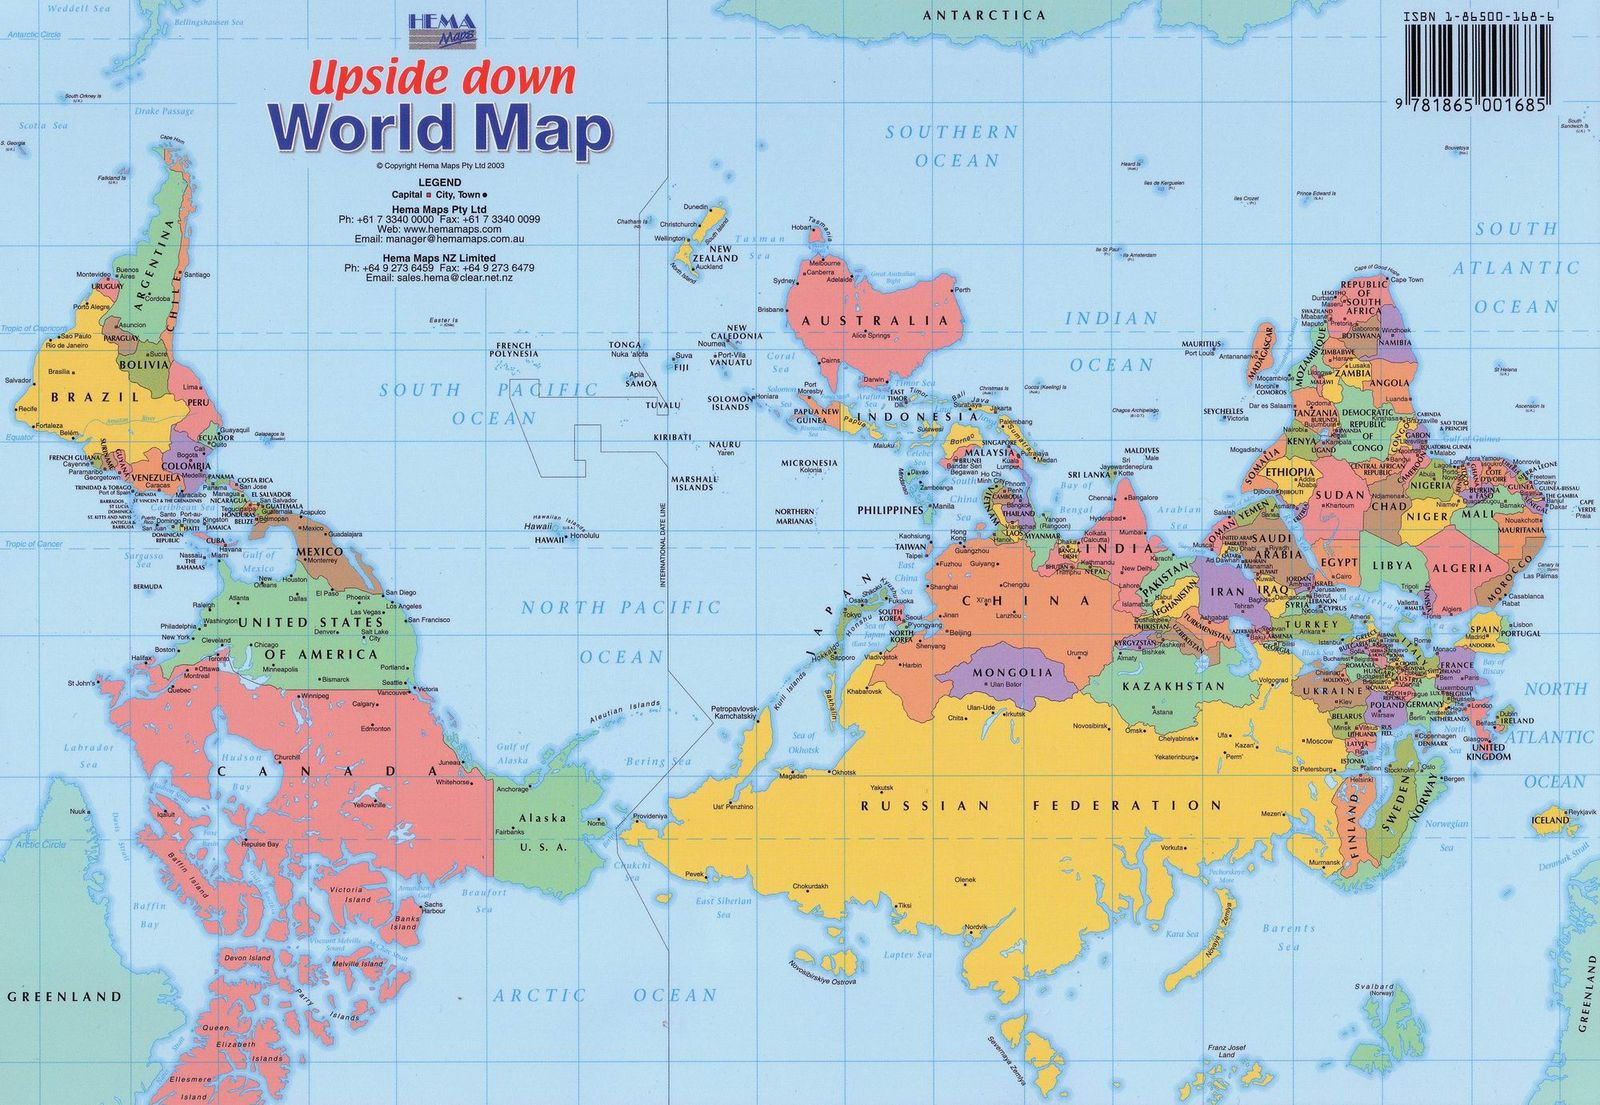 The Upside Down Map of the World